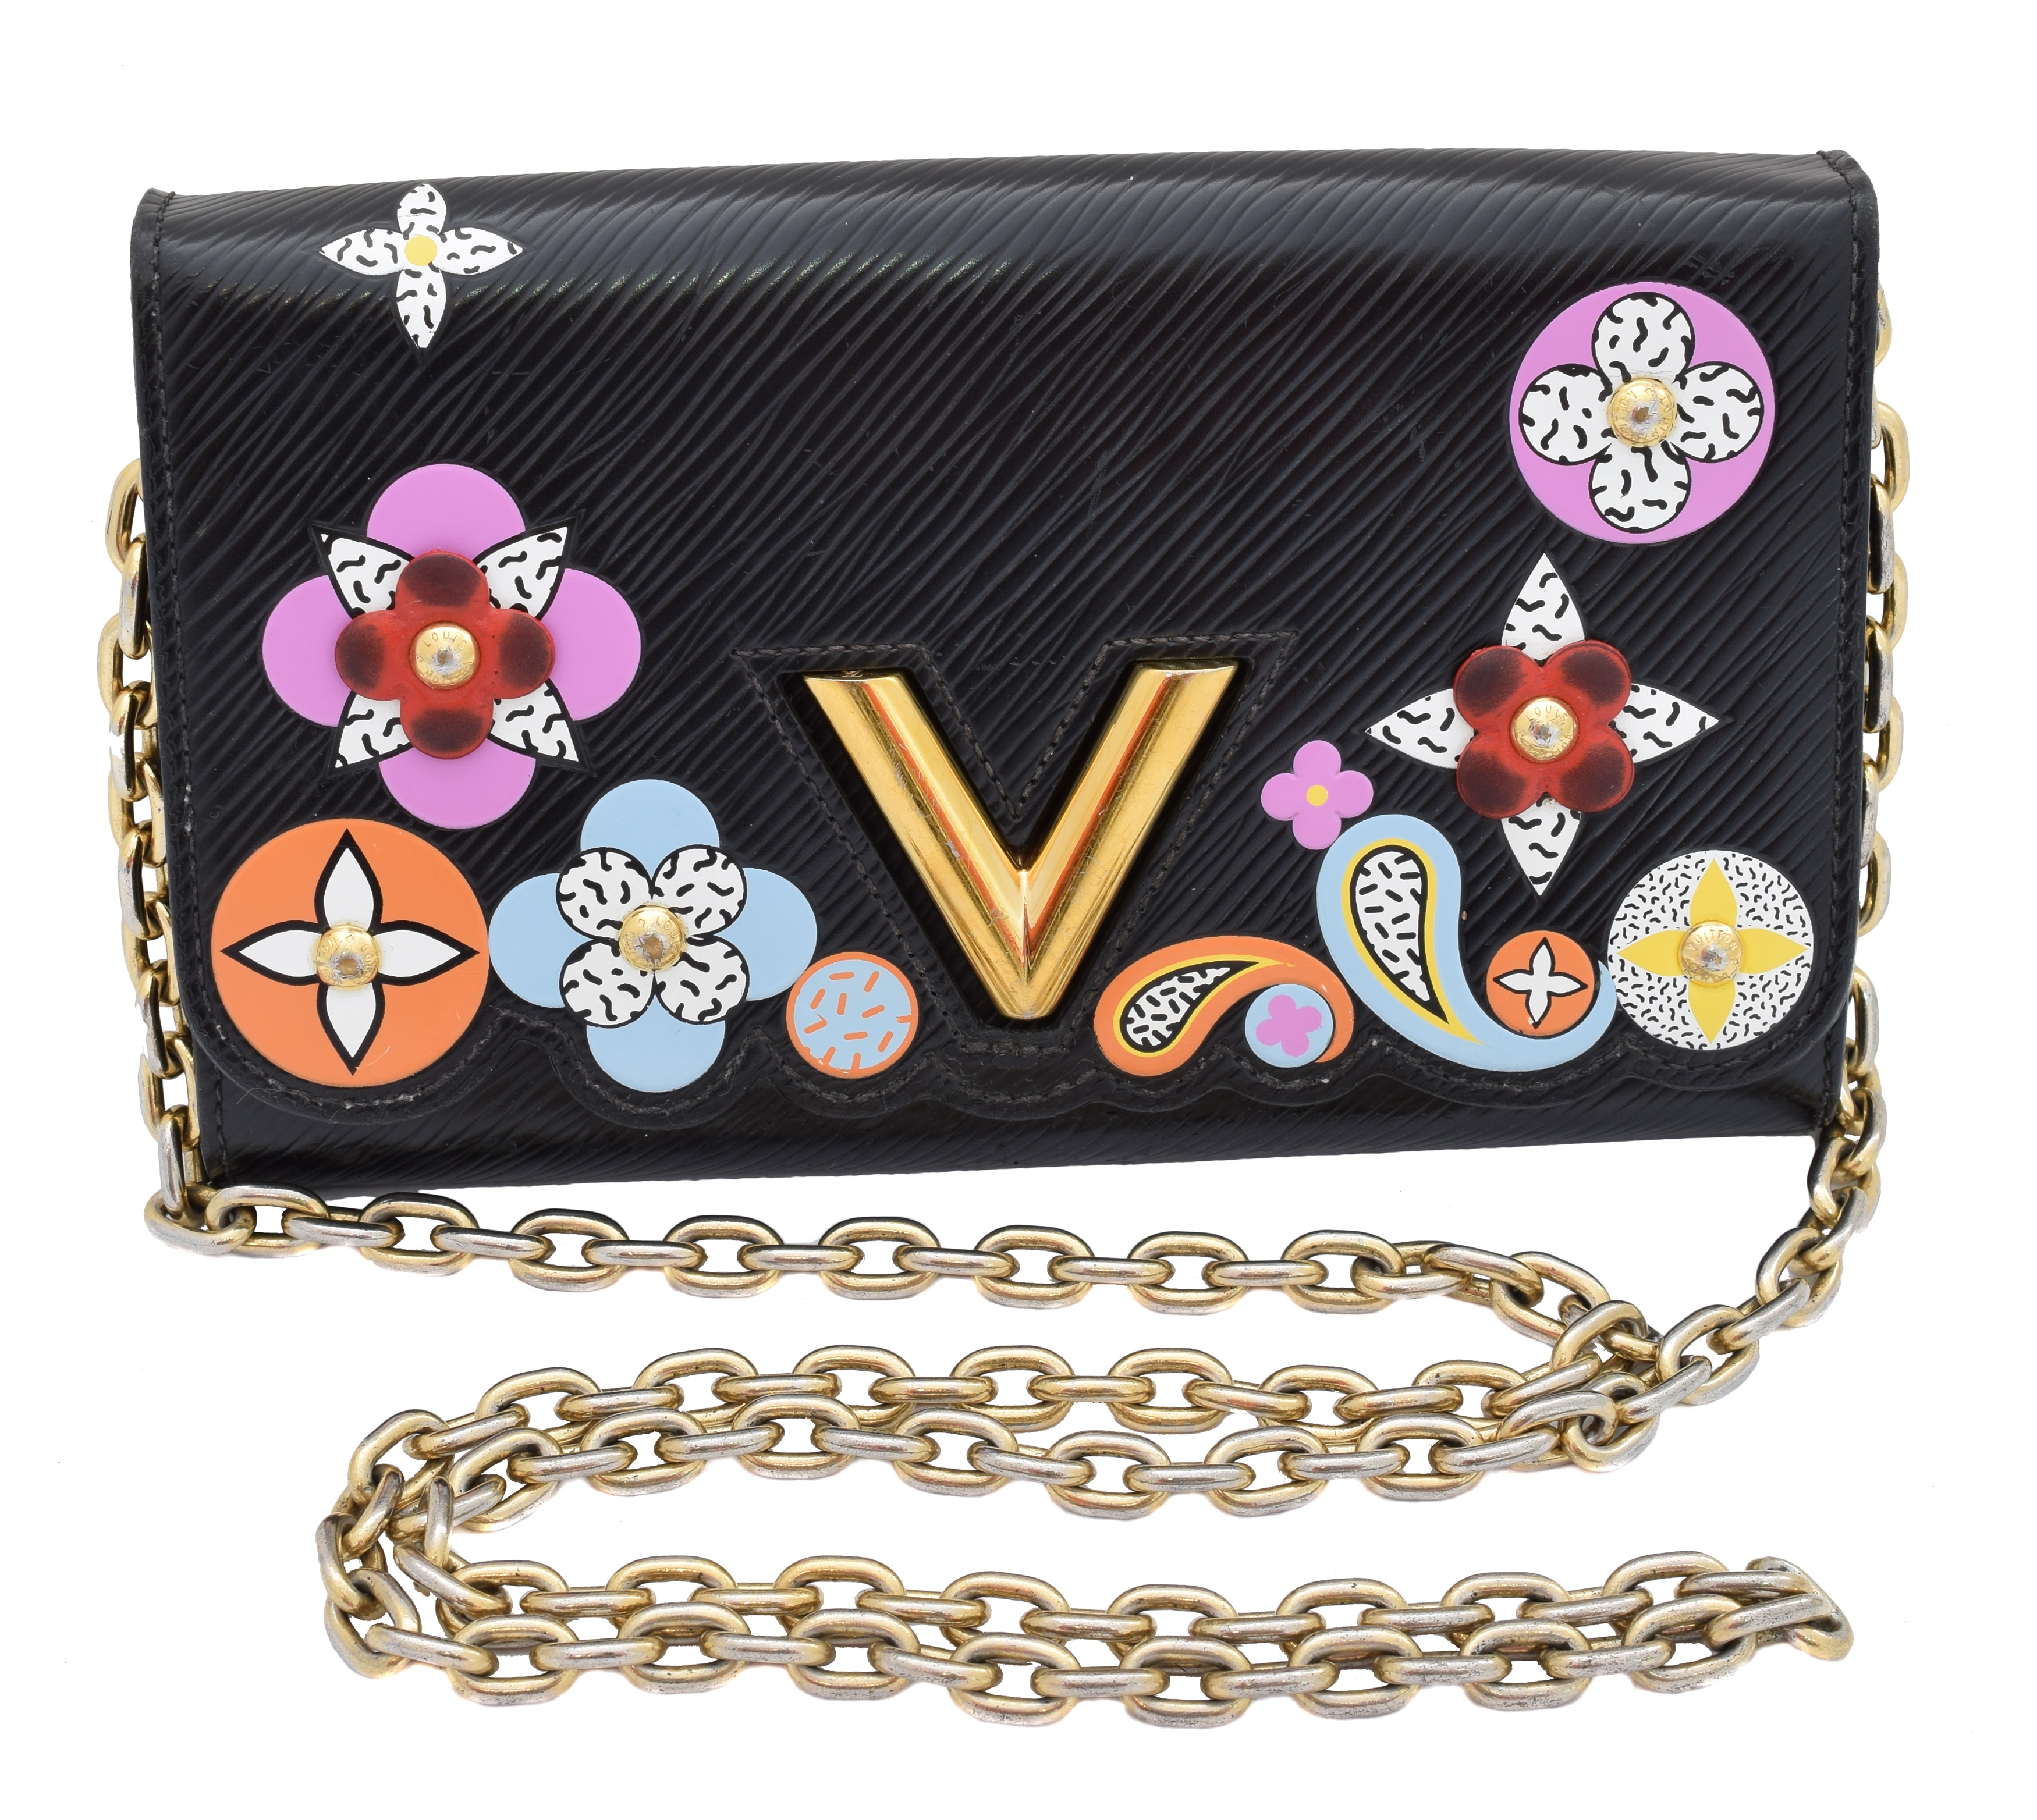 A Louis Vuitton Twist Blossom Edition Wallet on Chain Shoulder Bag, circa 2017, the maker's black Epi leather exterior with vari colour floral accents, gold-tone maker's clasp and chain handle, serial number SP3177. With maker's dustbag.